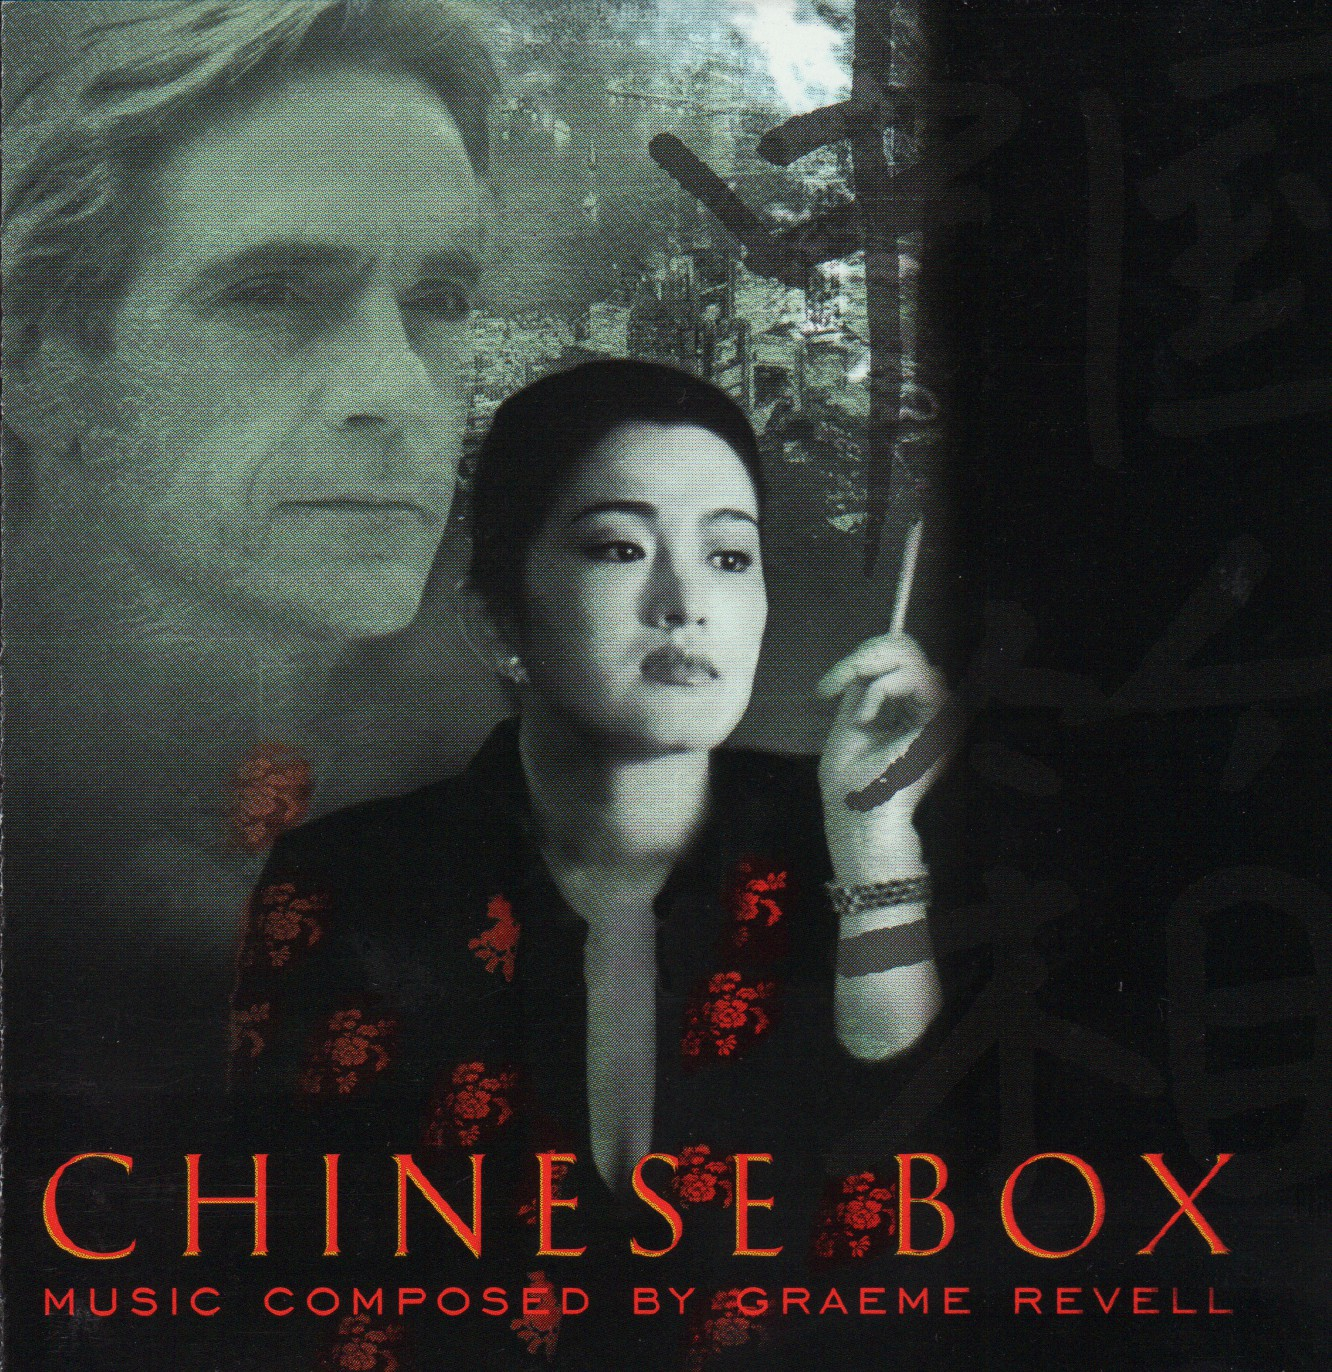 chinese box 1997 film the blog of charles chinese box is a 1997 movie directed by wayne wang director of joy luck club released in 1993 starring jeremy irons gong li maggie cheung and michael